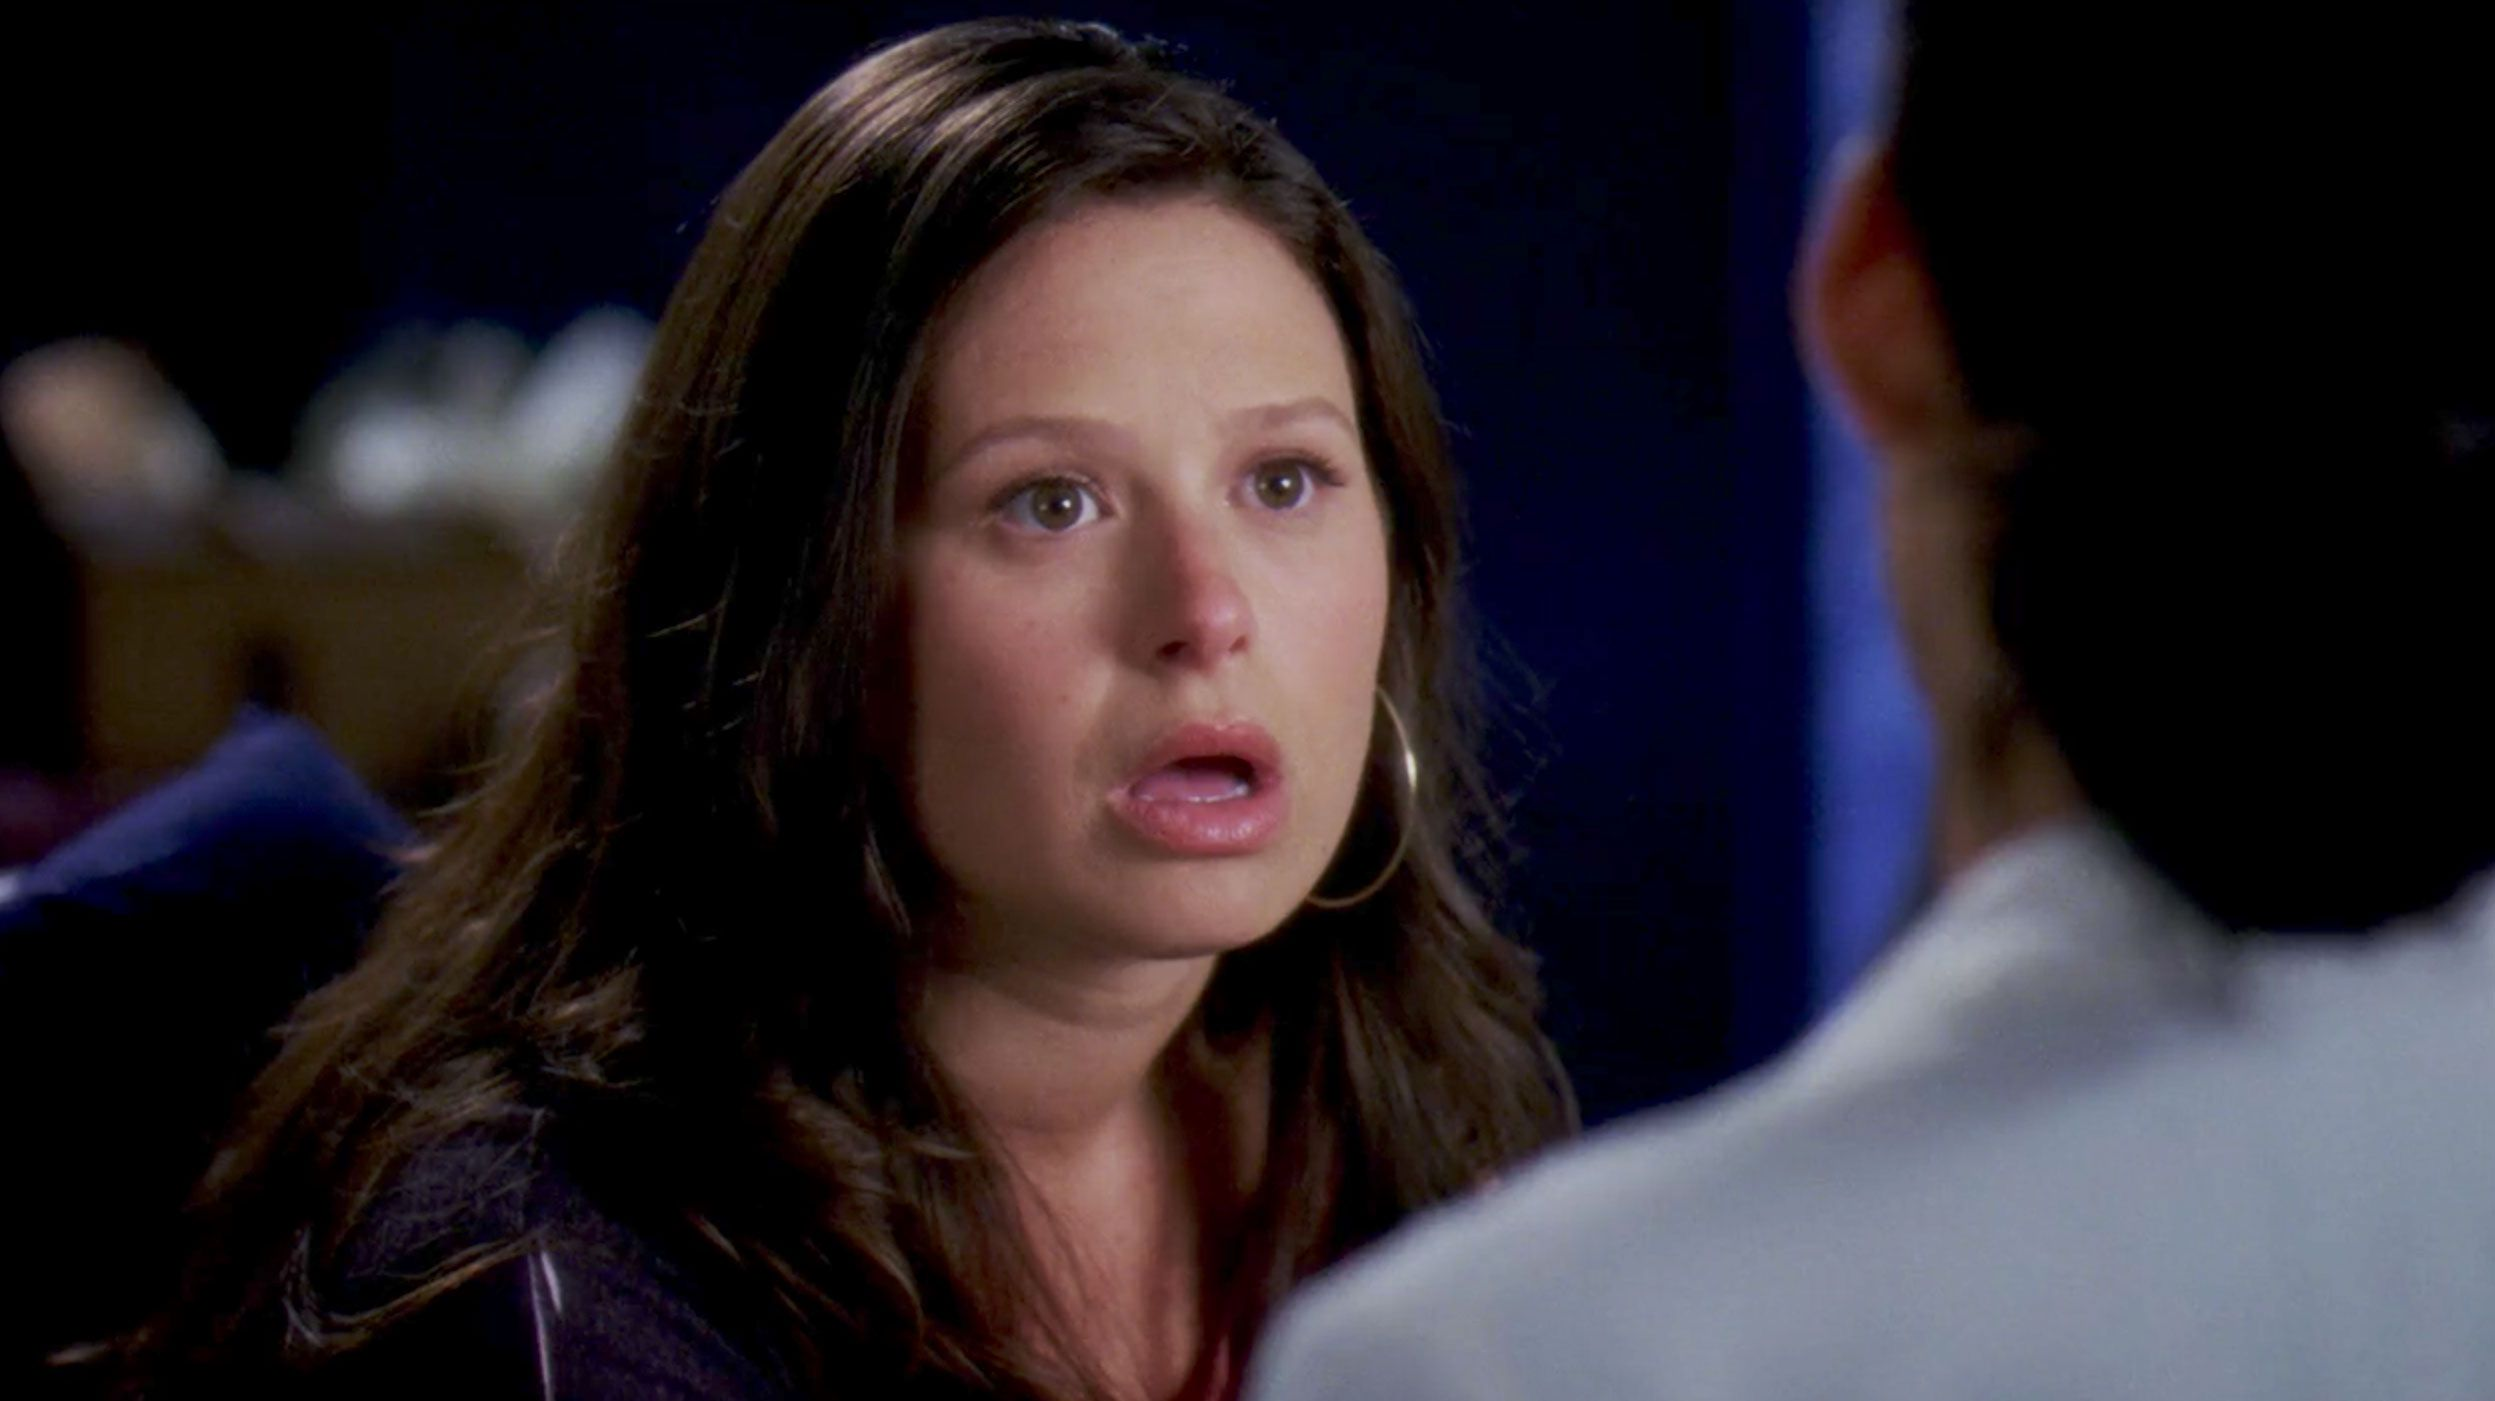 50 Famous Actors You Probably Forgot Were On Greys Anatomy